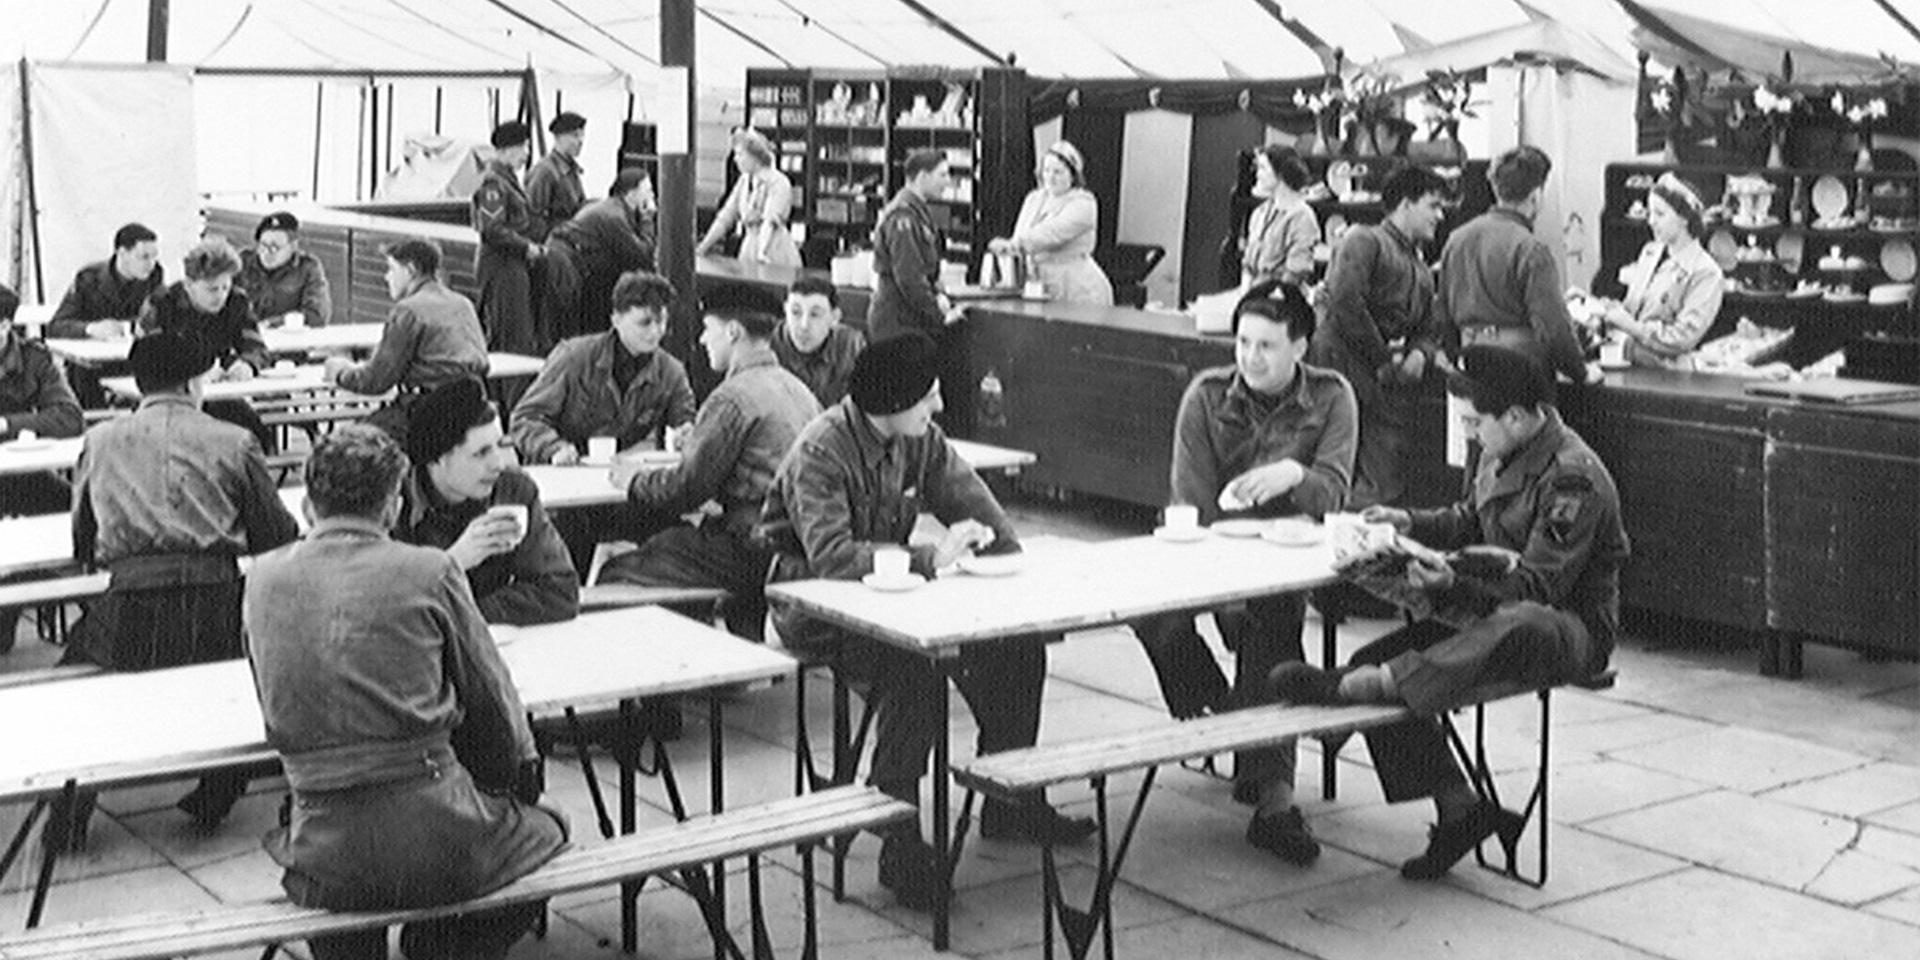 National Servicemen relax in the NAAFI canteen at Weybourne Camp, April 1954